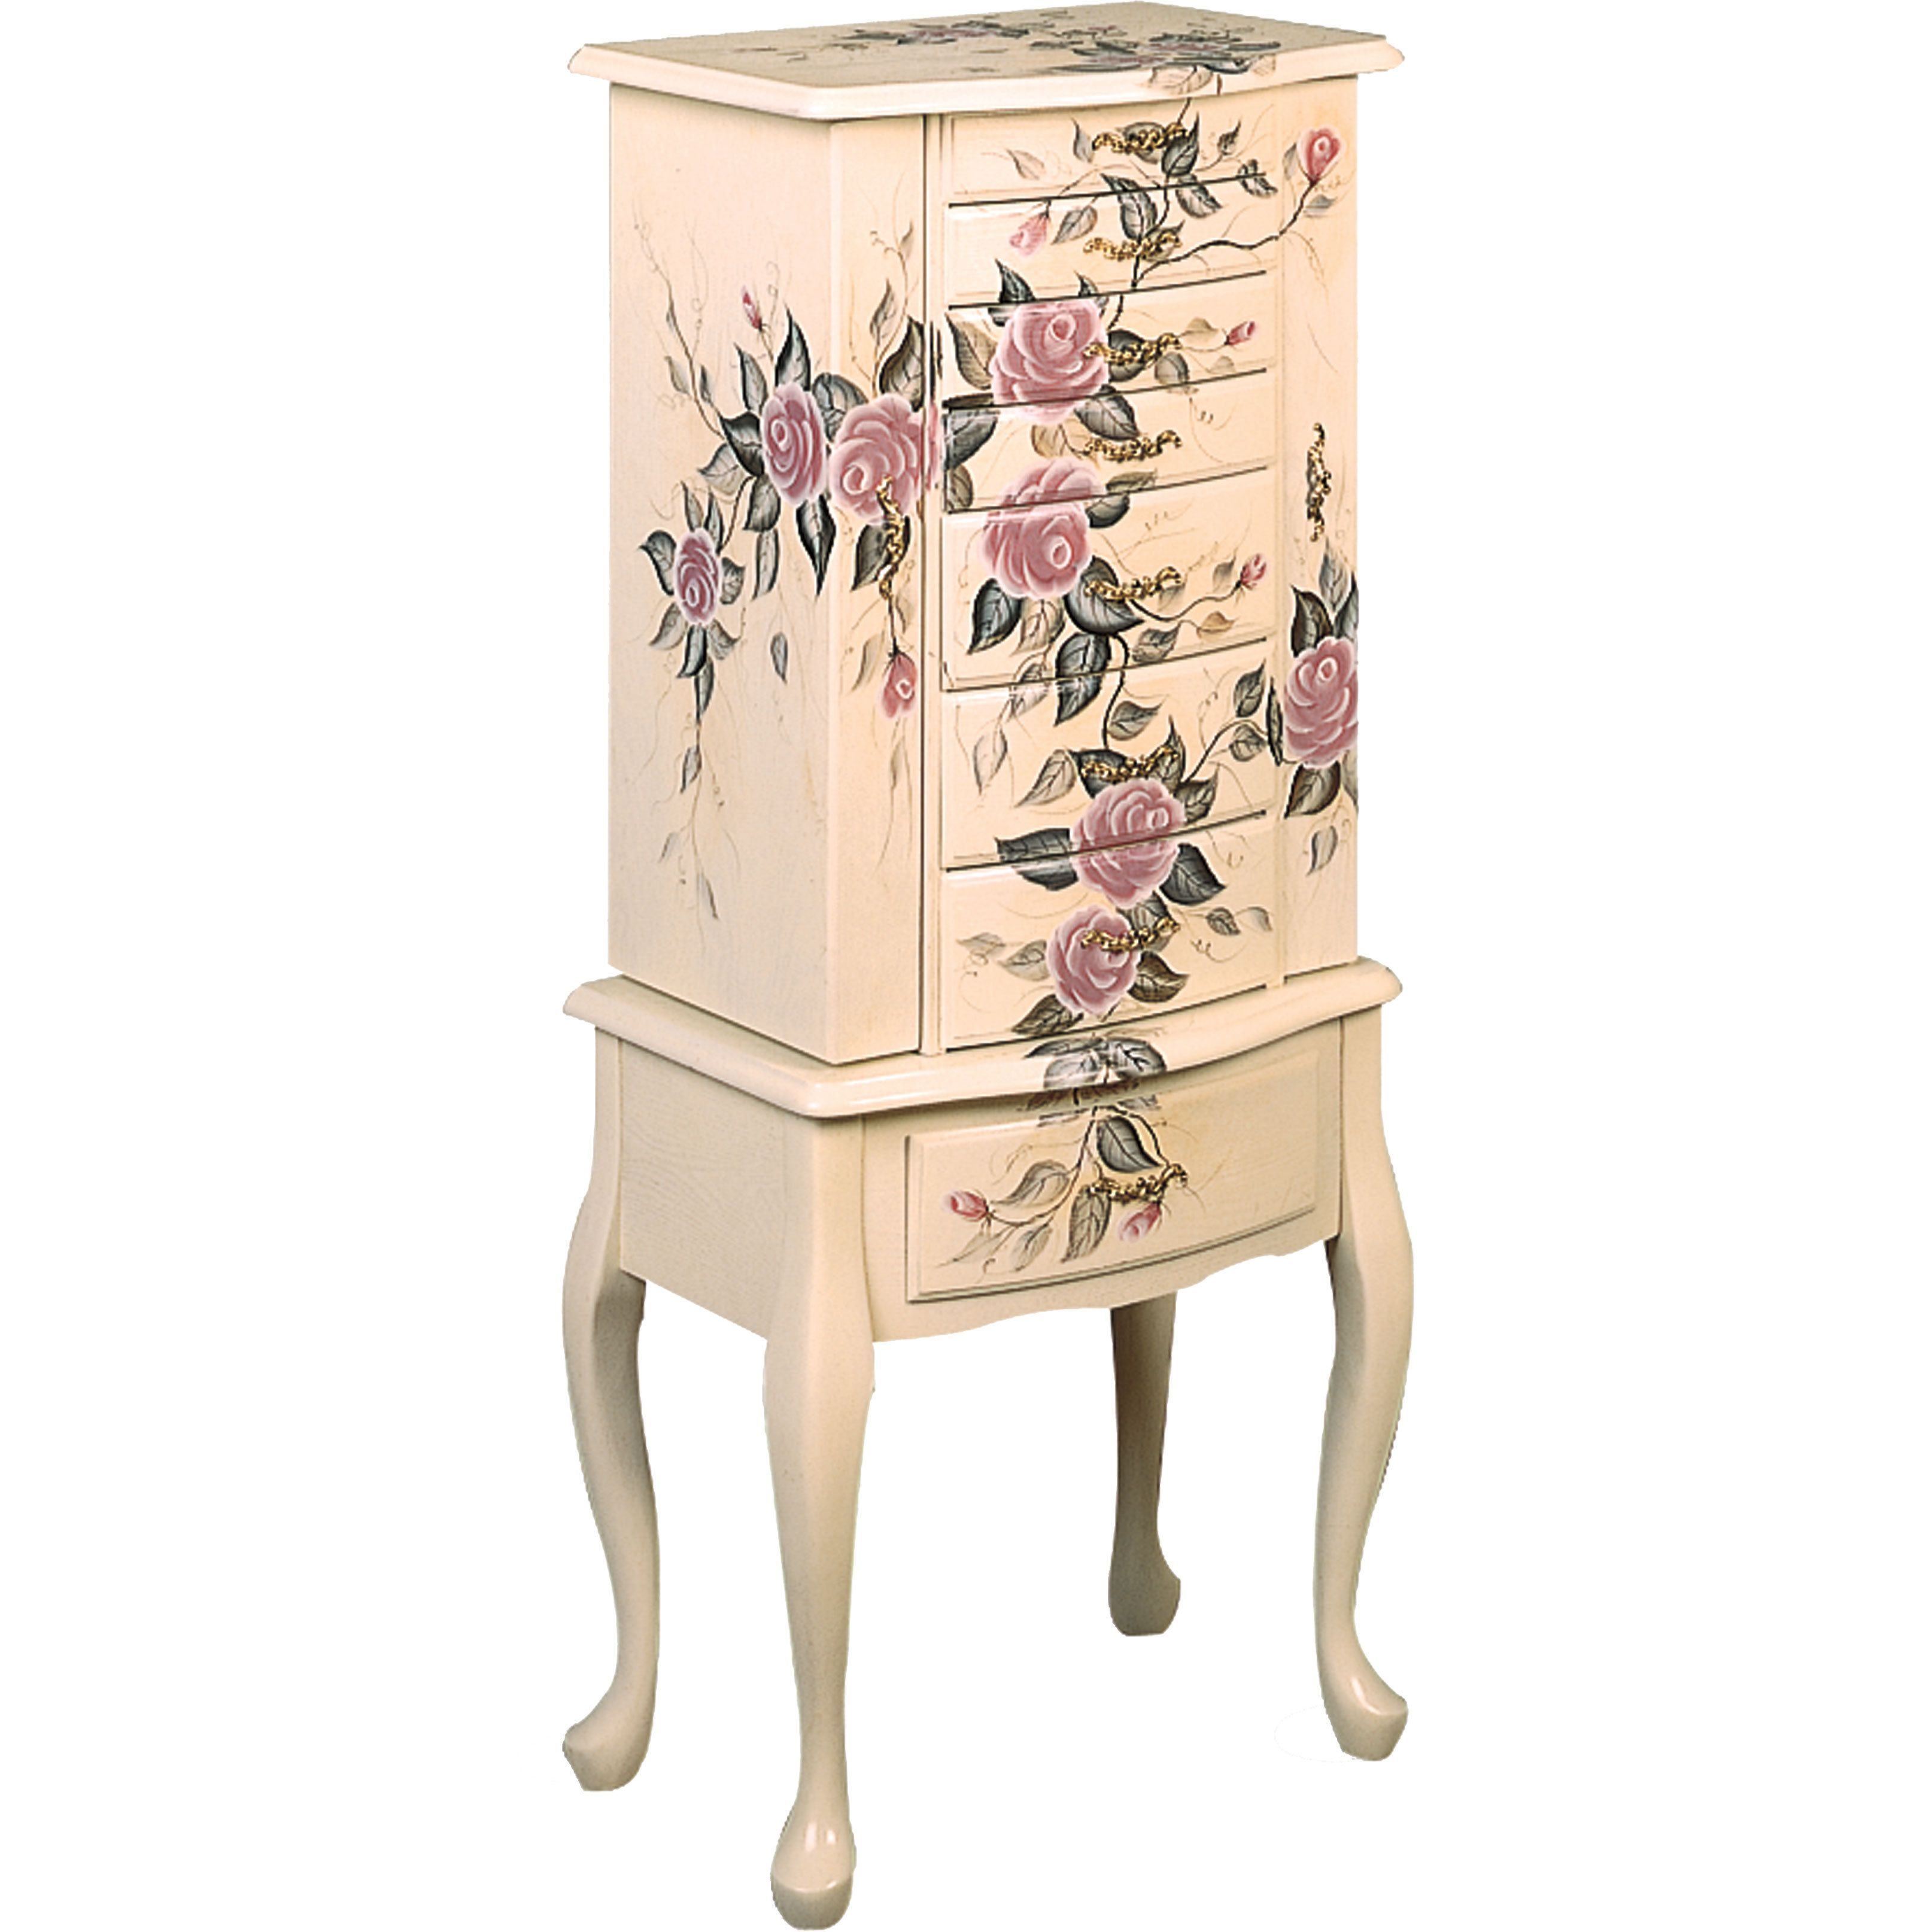 Coaster Company Floral Jewelry Armoire Jewelry Armoire Beige Off